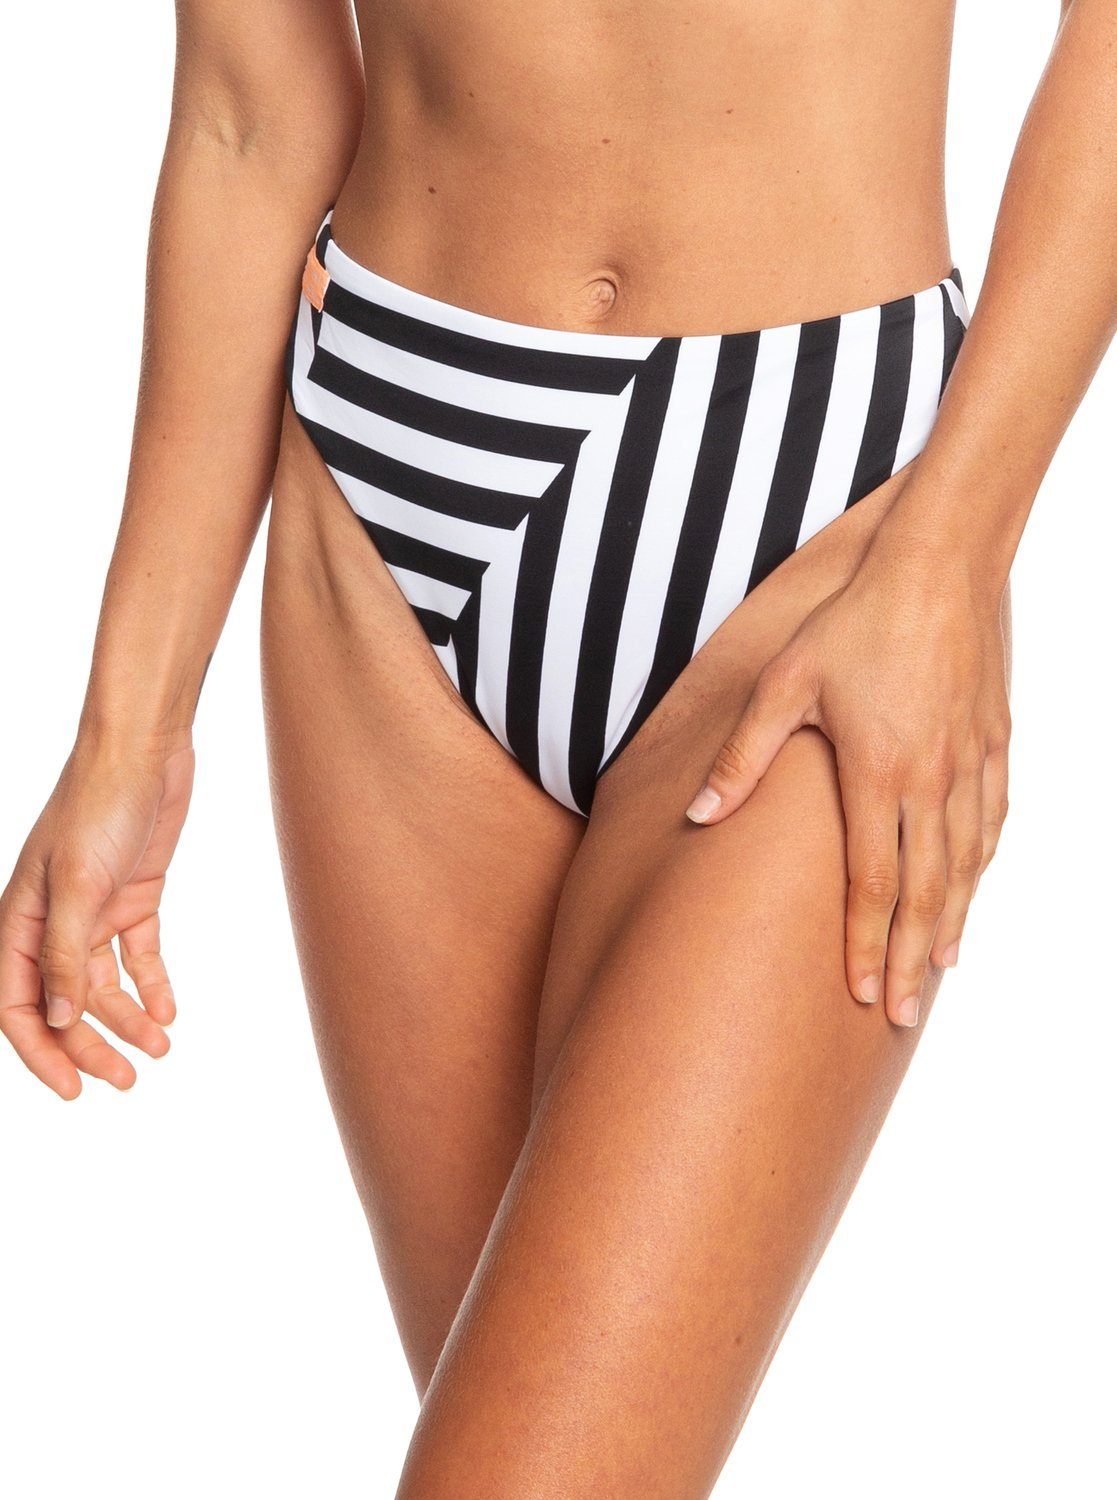 057d04e0e6887 0 POP Surf High Leg Bikini Bottoms White ERJX403710 Roxy